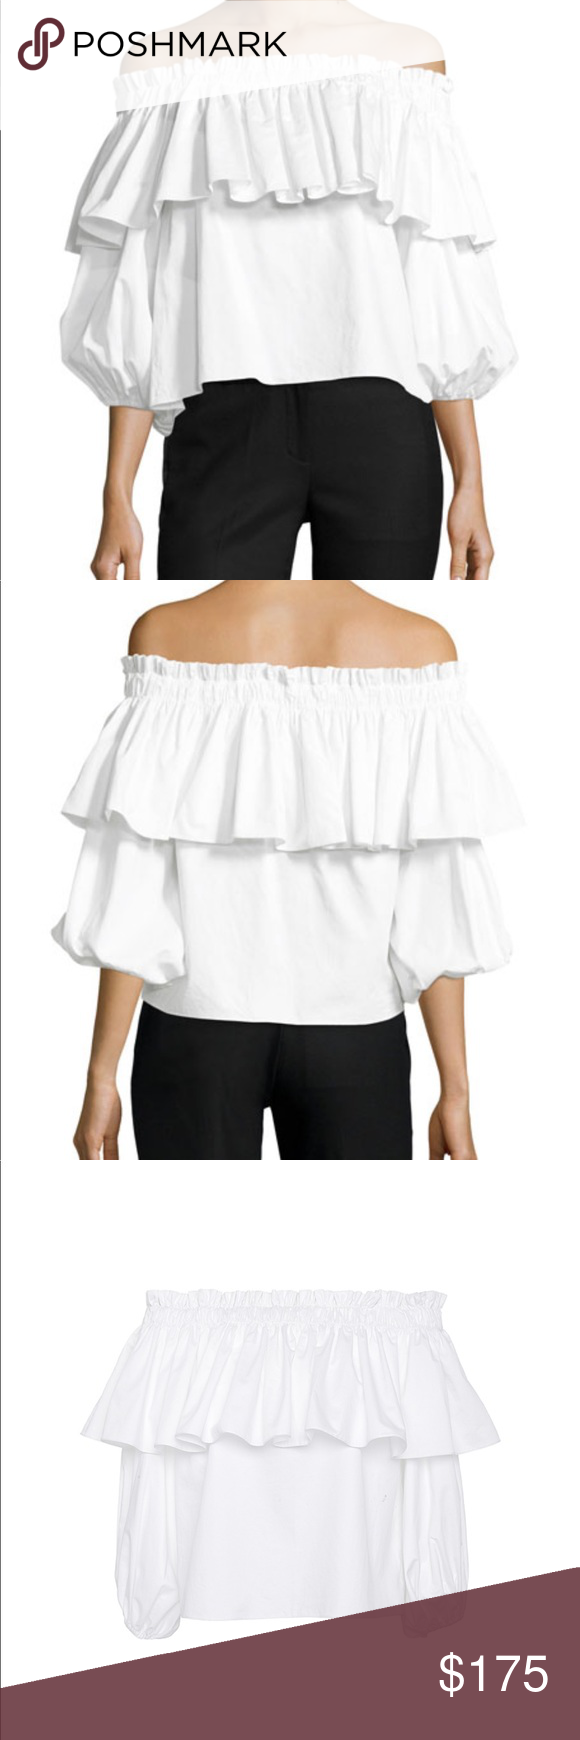 b425e98e5d4db4 Alexis Barbie Off The Shoulder Top Sz Small Like new! Only worn one time!  Super cute Alexis